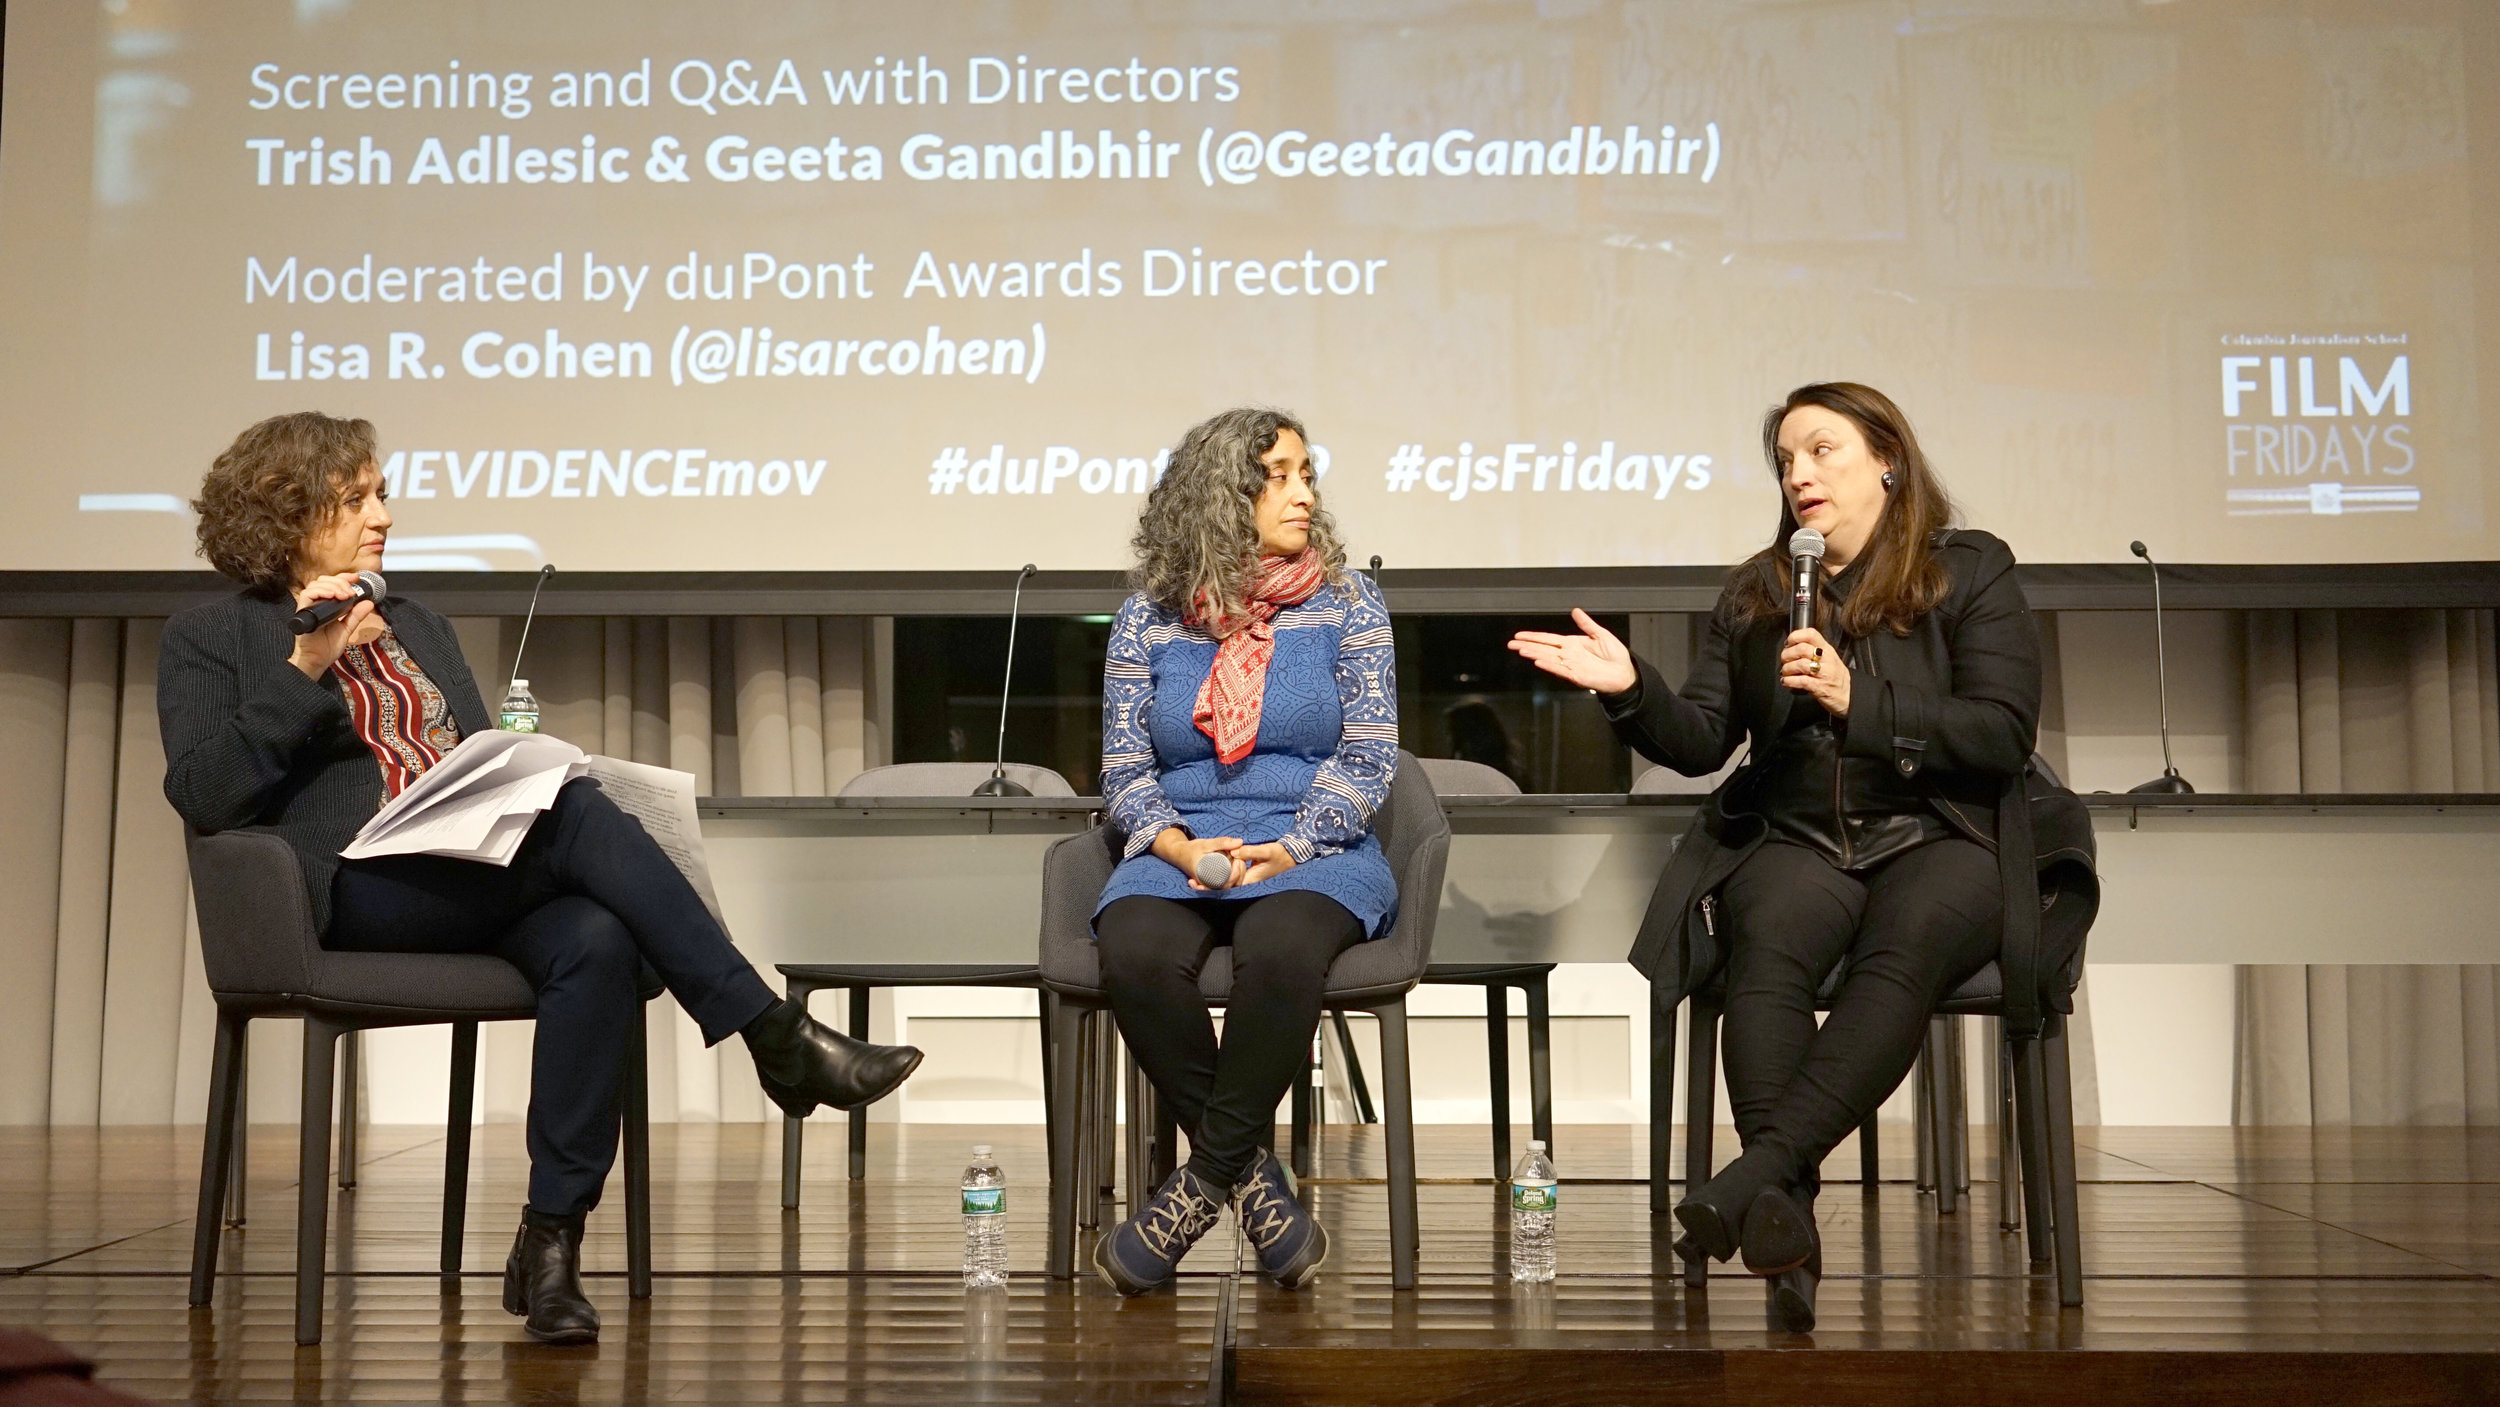 Directors Geeta Gandbhir (r) and Trish Adlesic (l) talk about I Am Evidence with duPont Director Lisa R. Cohen